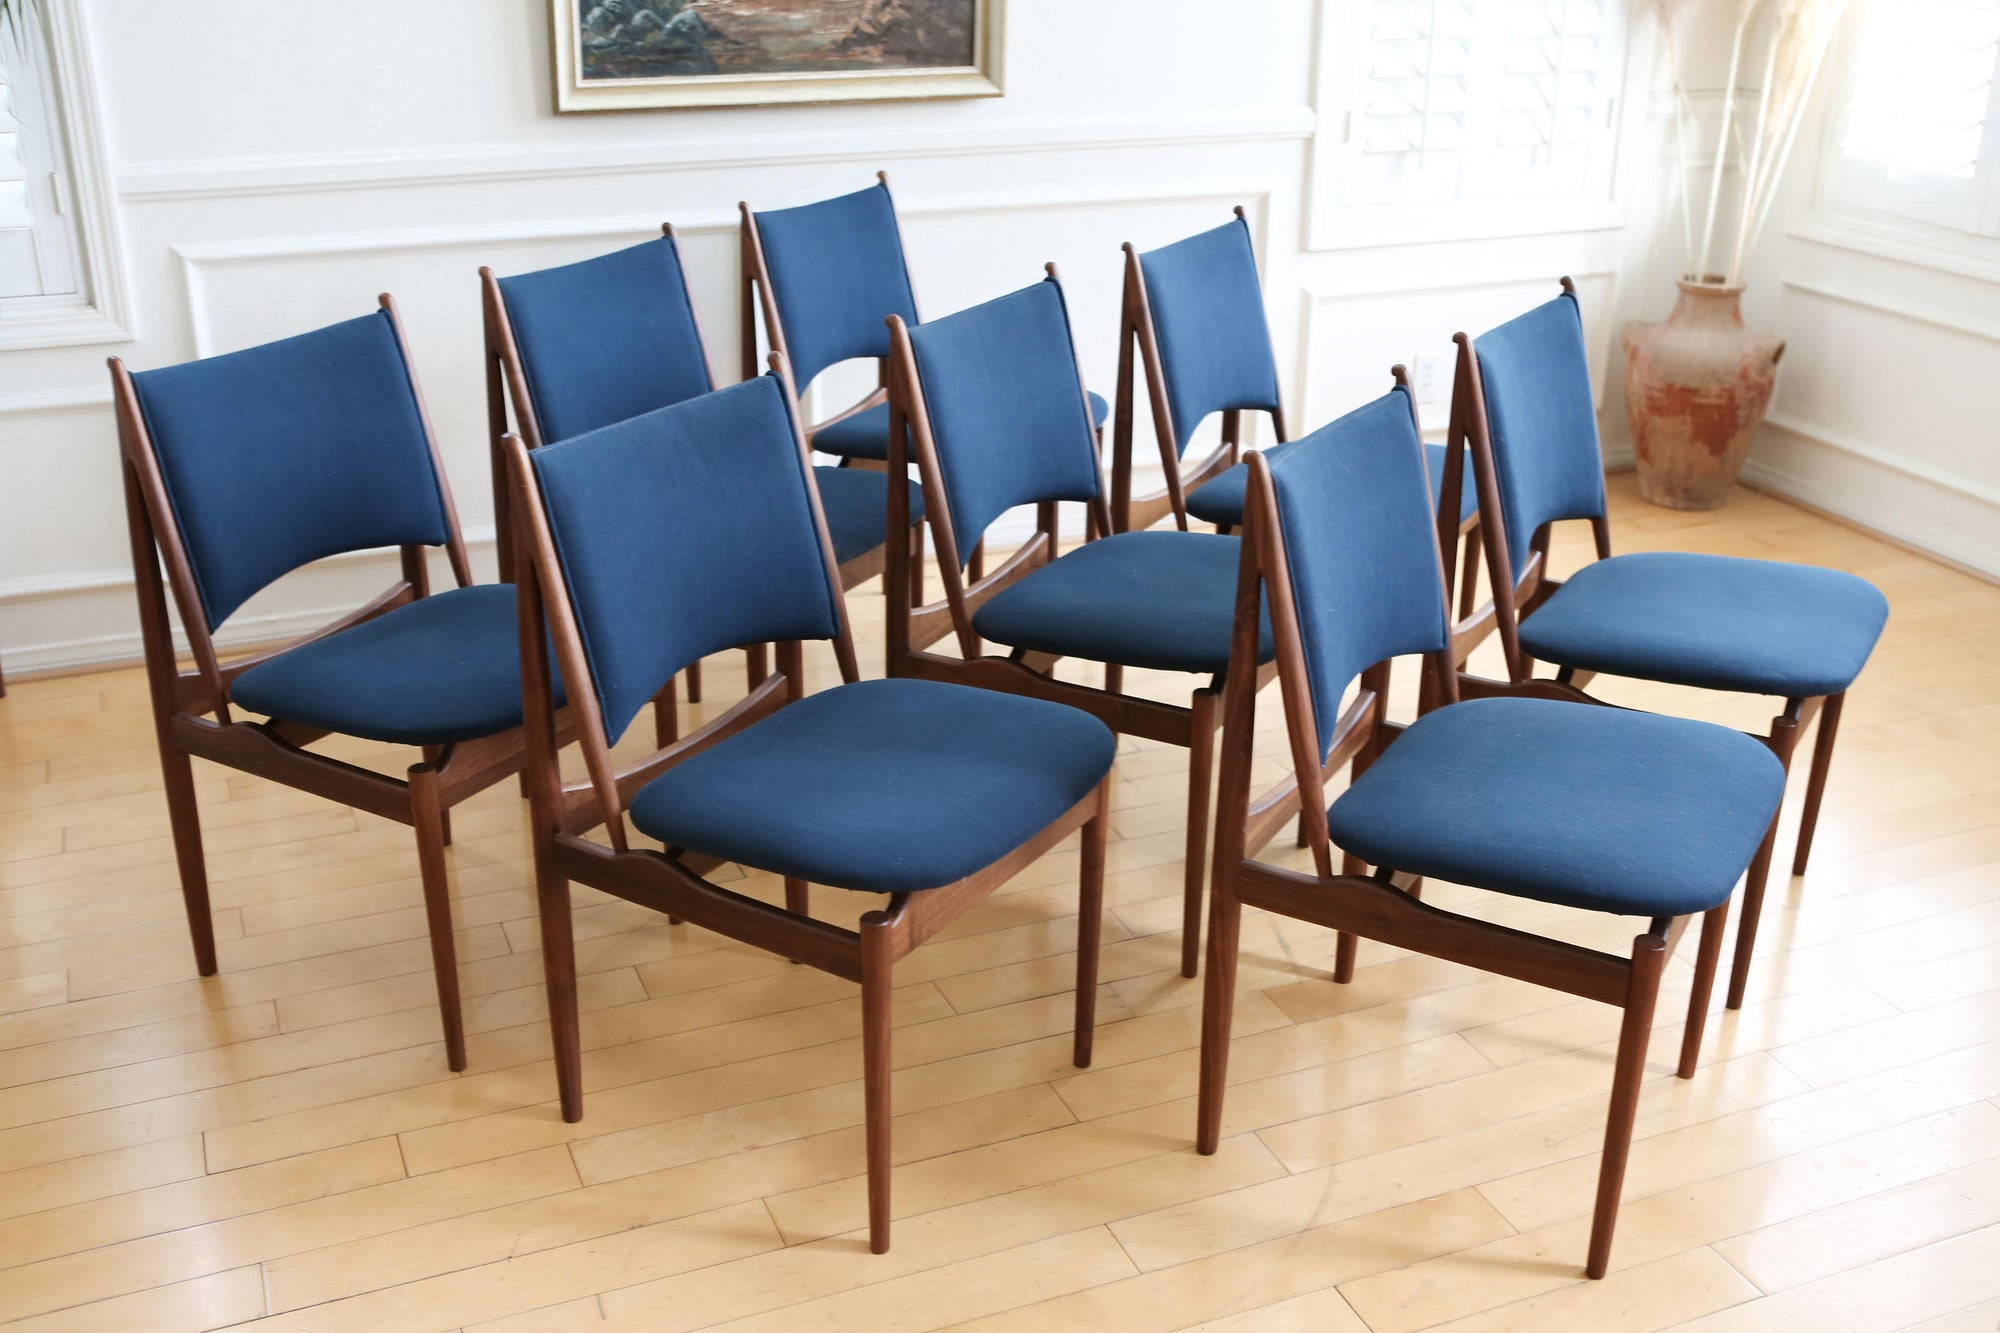 Picture of: Mid Century Modern Teak Dining Chairs In Navy Blue Set Of 8 No 627 Shopgoldenpineapple